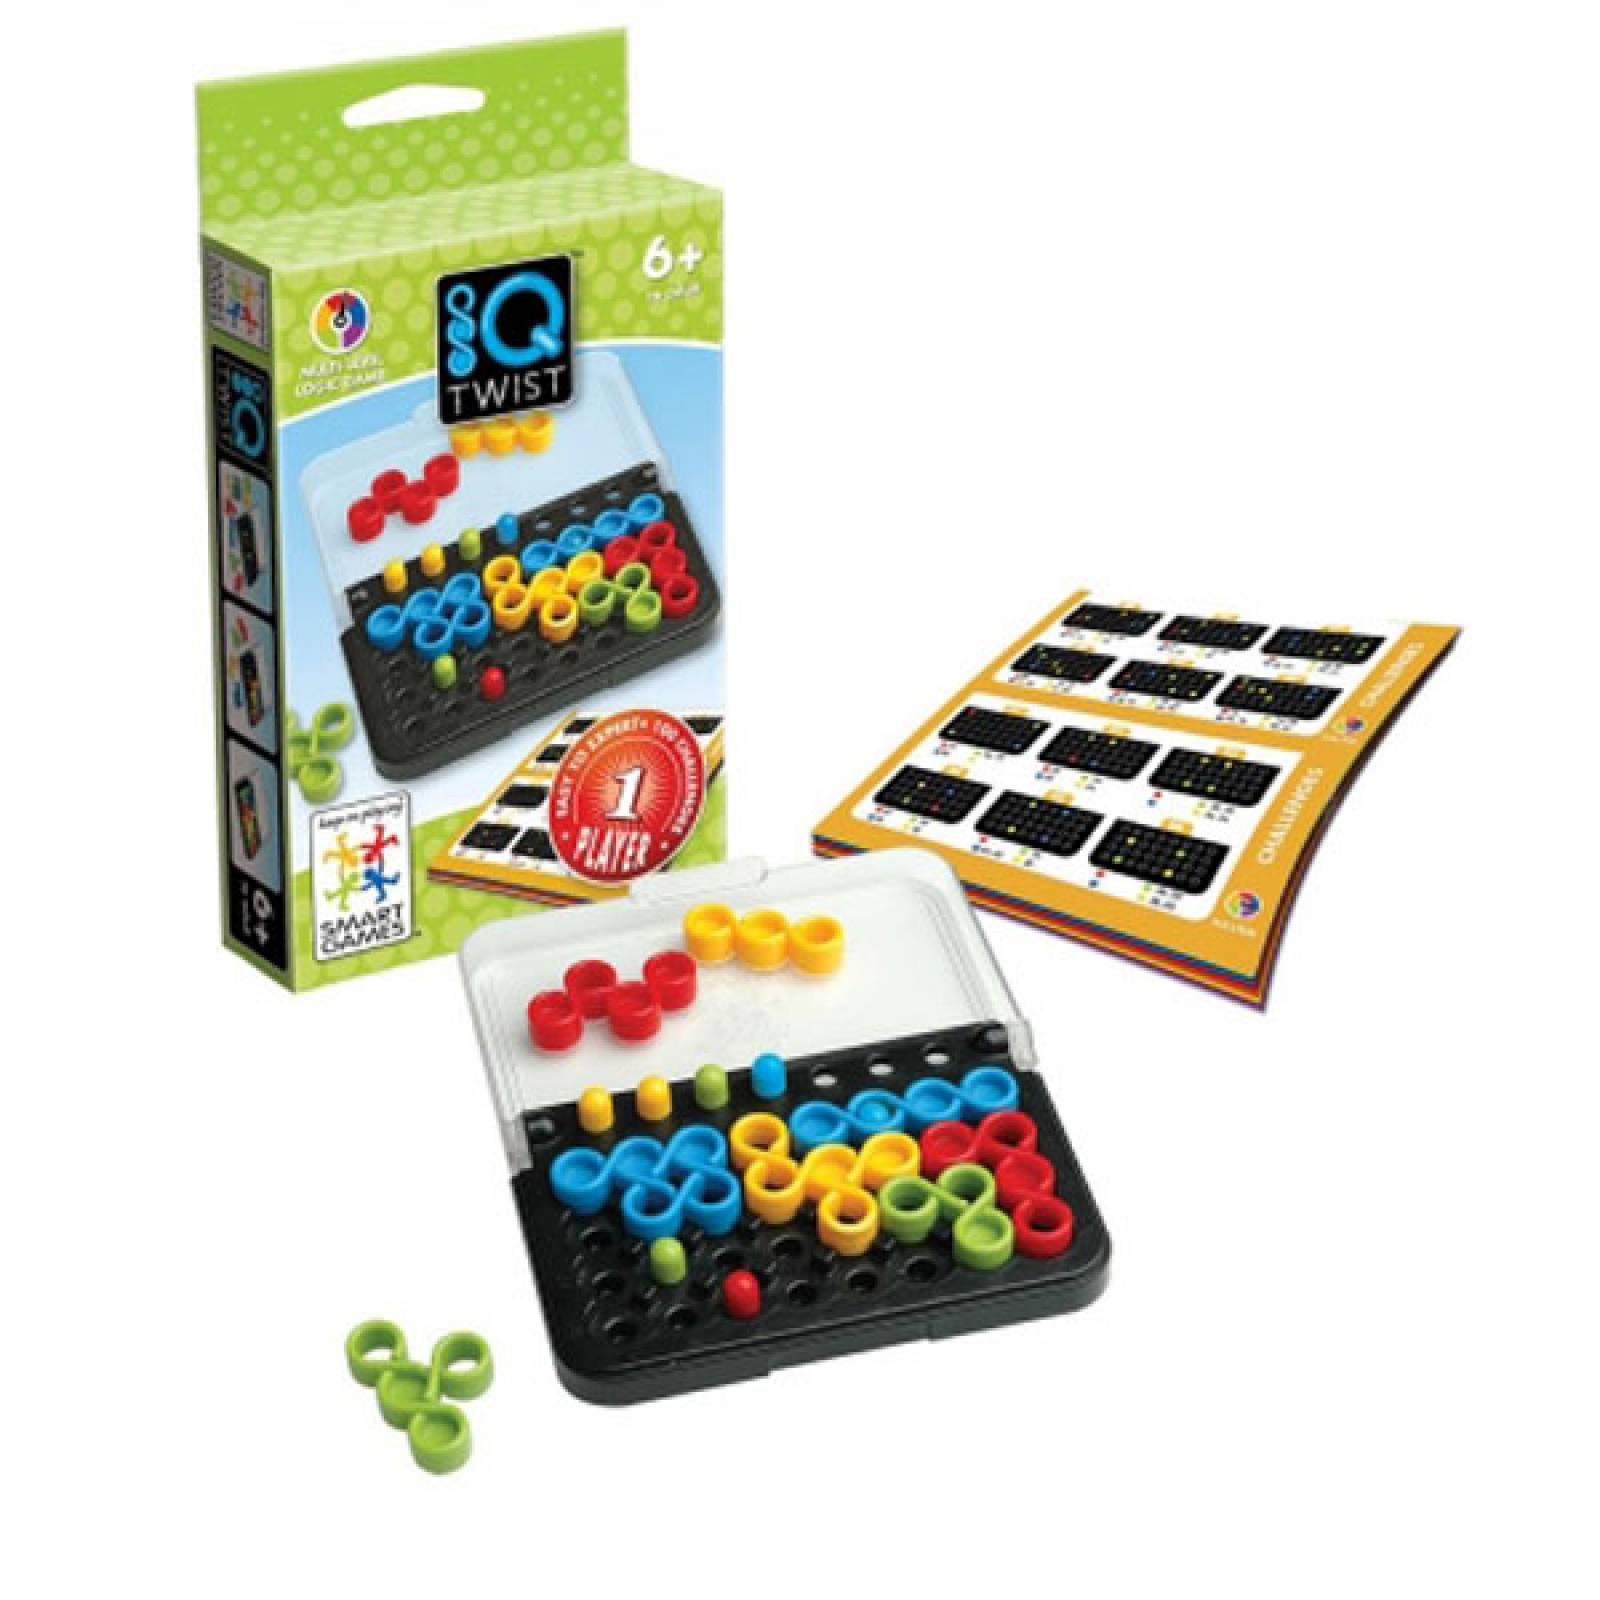 IQ Twist Game By Smart Games 6+